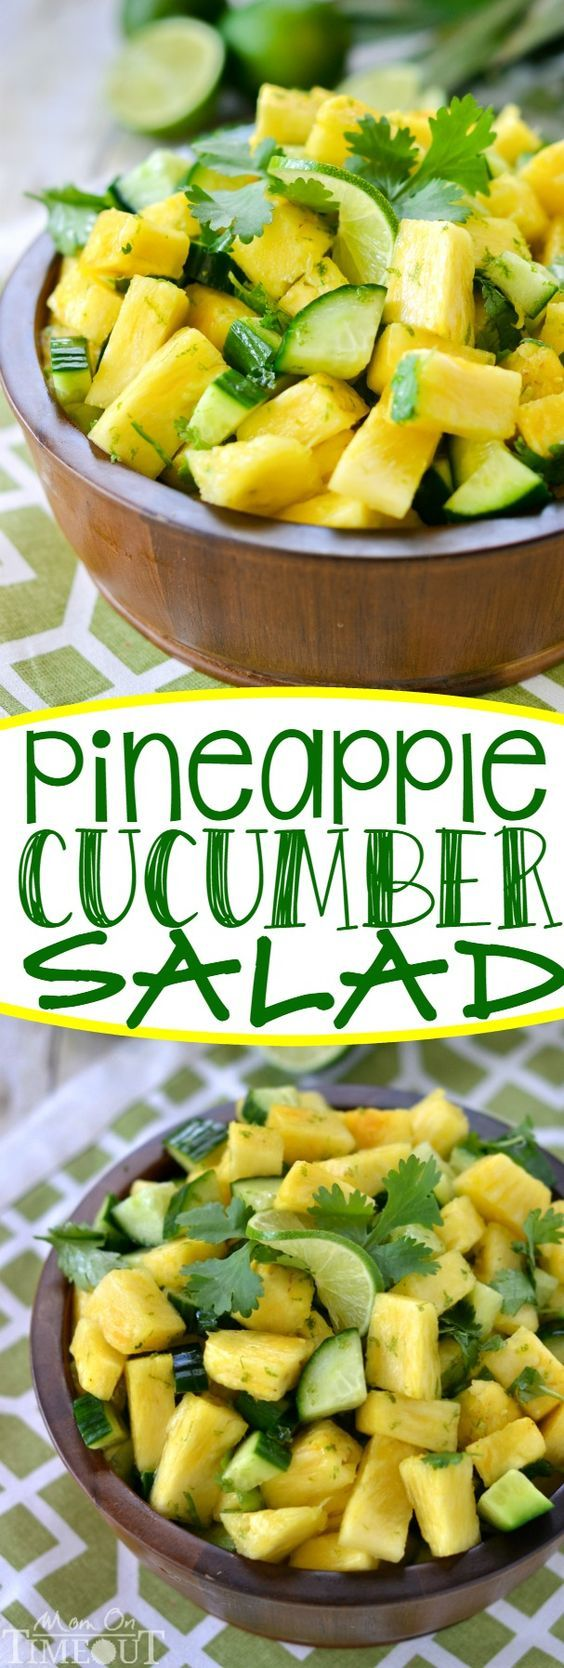 This perfectly refreshing Pineapple Cucumber Salad is wonderfully easy to make…